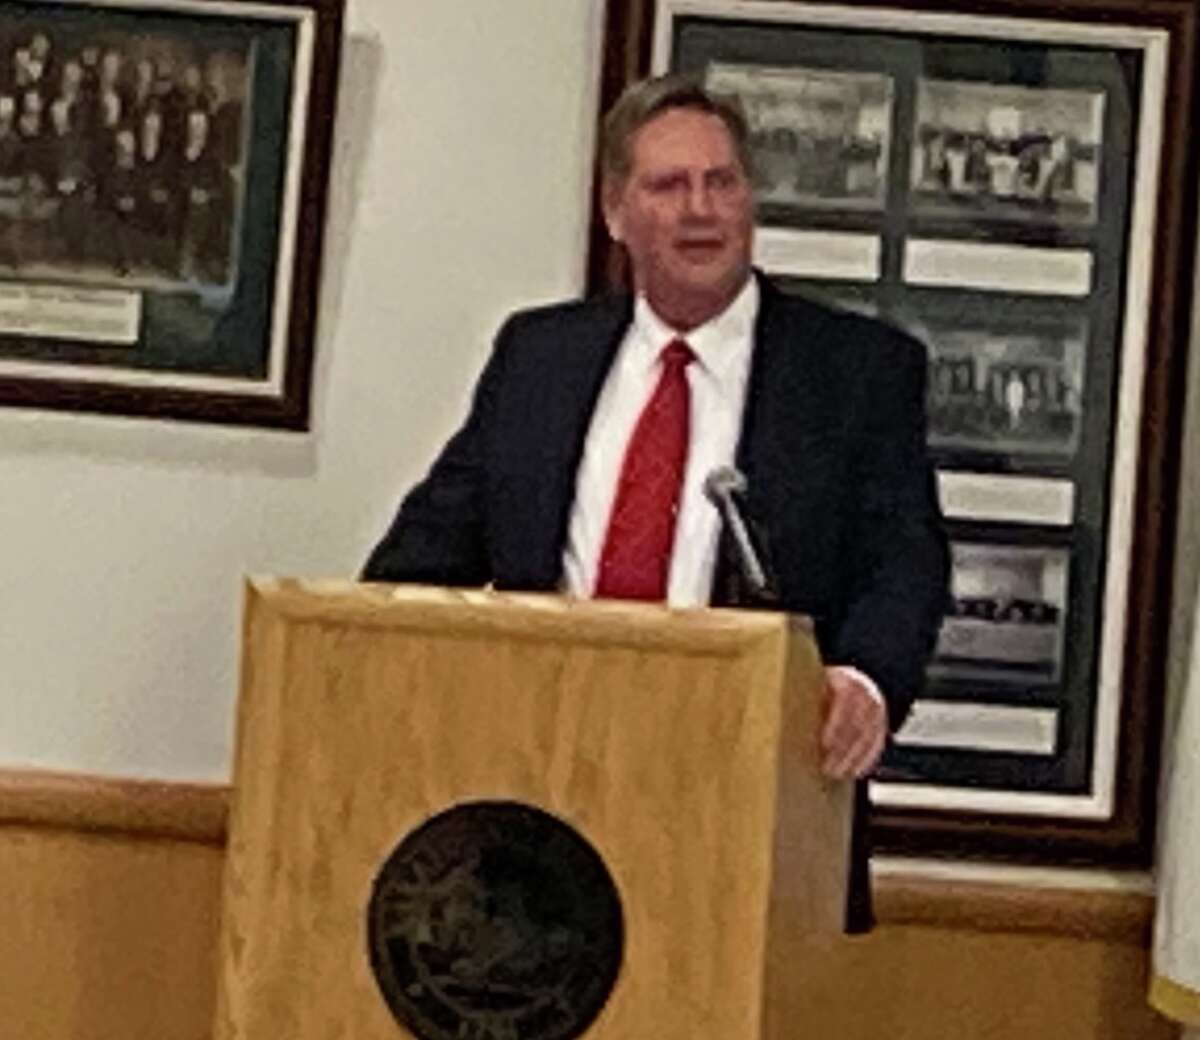 Moreau Supervisor Todd Kusnierz is Saratoga County's new chair of the Board of Supervisors. He speaks in a short speech on Wednesday, Jan. 6, at the Saratoga County Board of Supervisor's room in Ballston Spa.